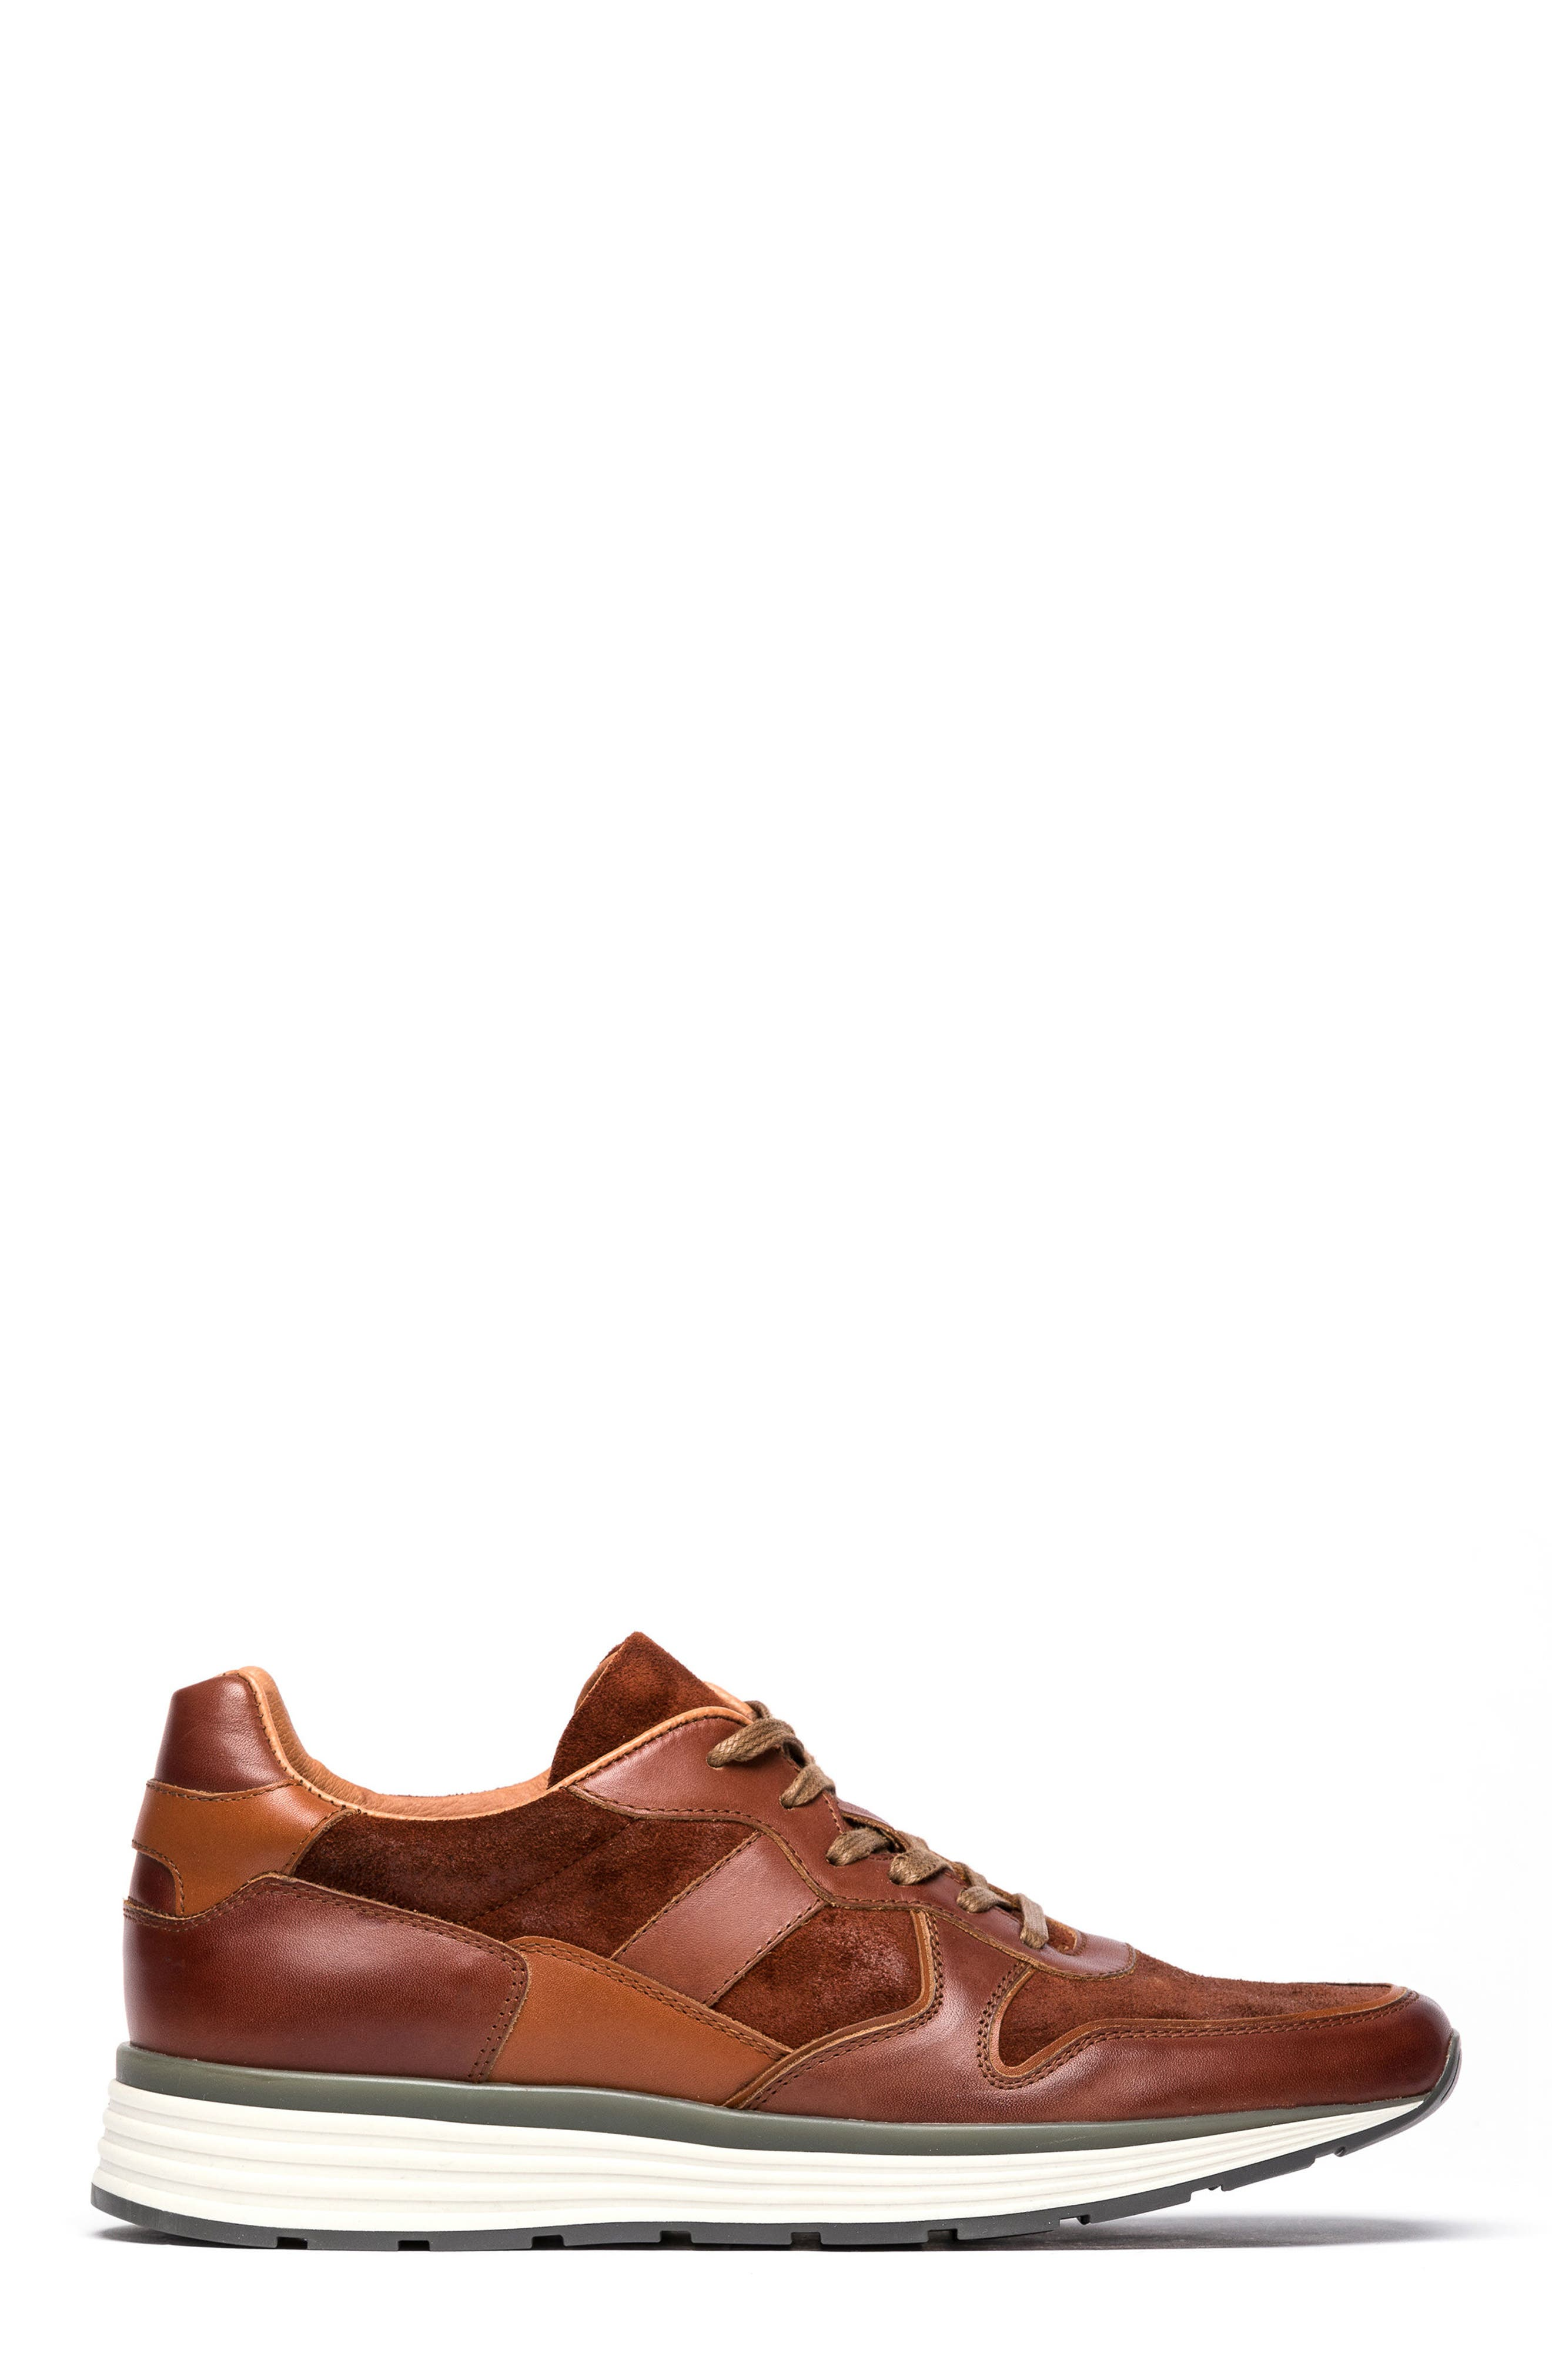 Hickory Sneaker,                             Alternate thumbnail 3, color,                             Tan Leather